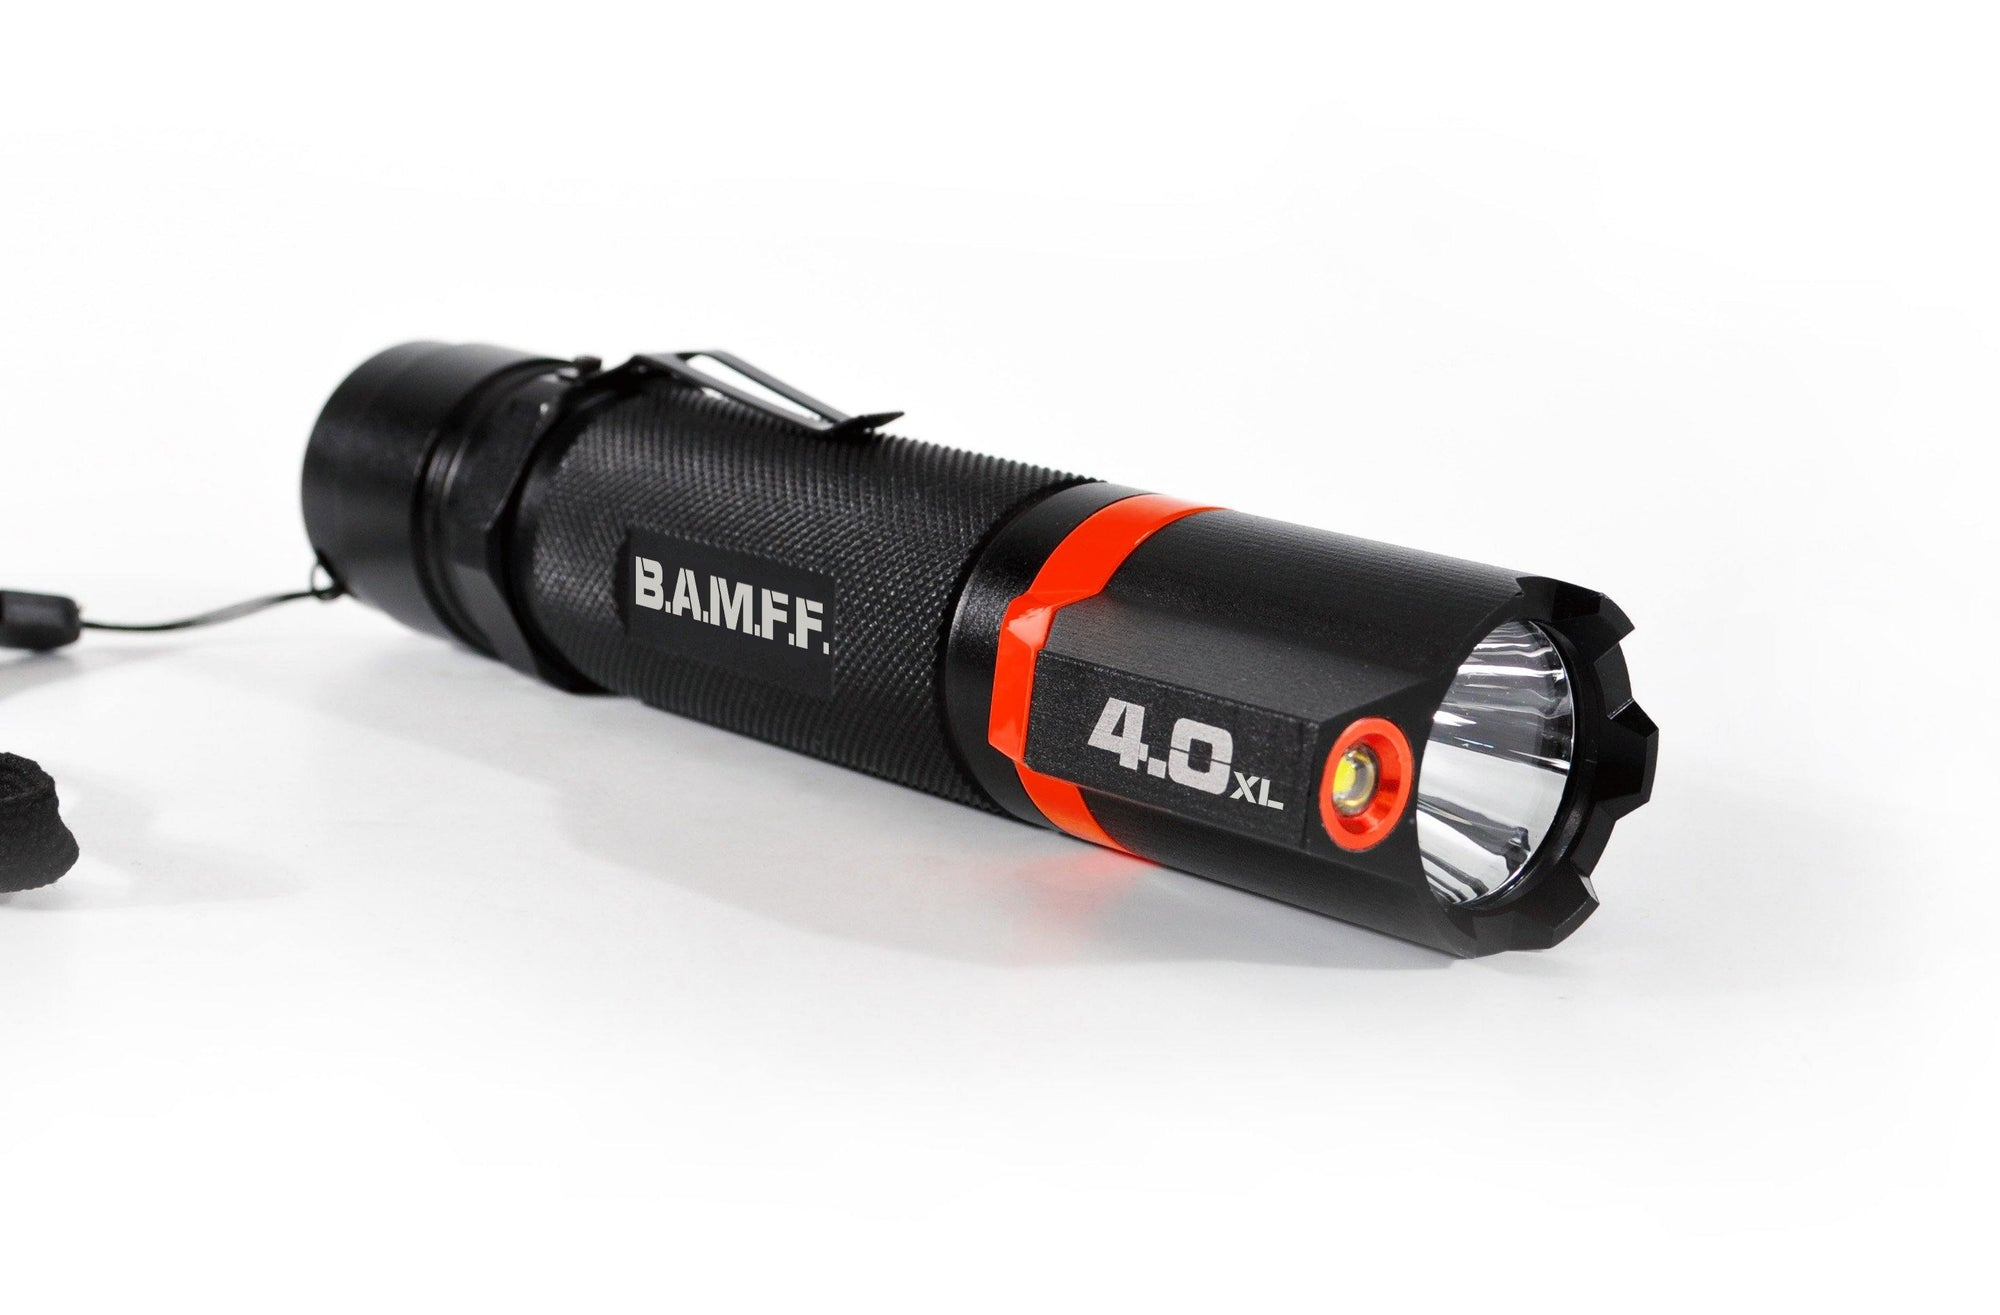 BAMFF 4.0XL dual LED flashlight long distance and area lighting in one | STKR Concepts - striker flashlight